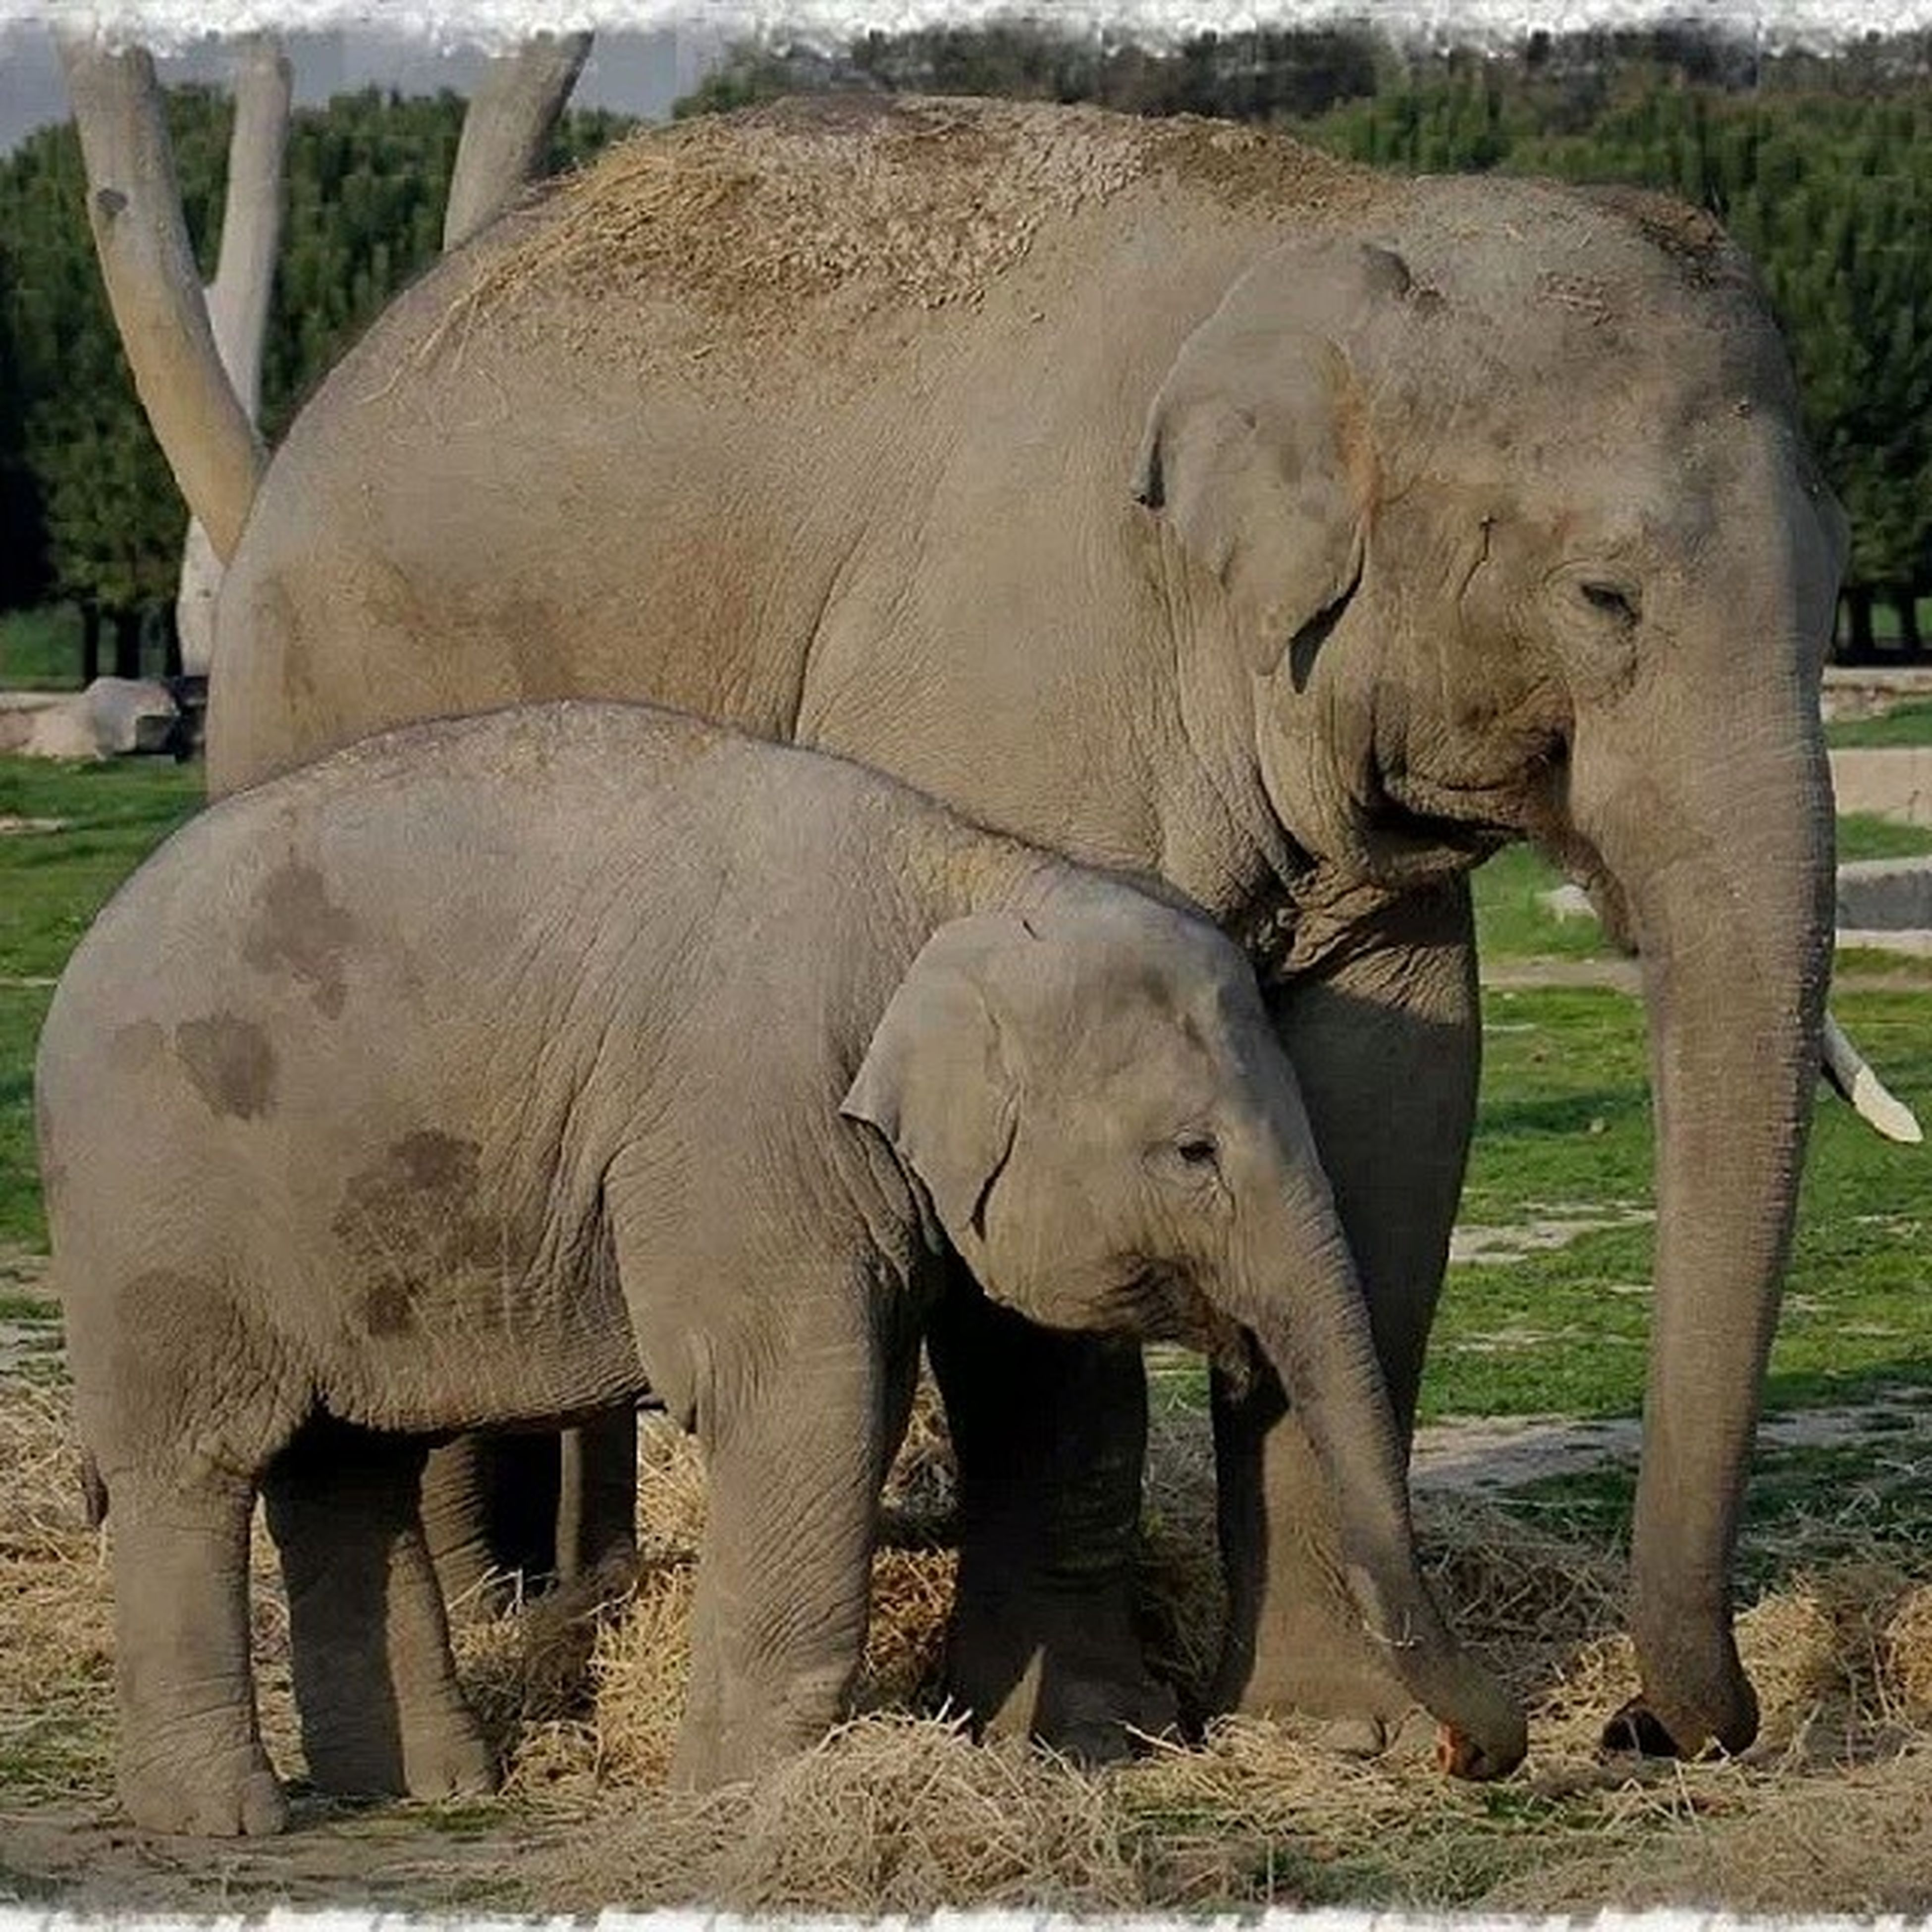 animal themes, elephant, grass, field, sculpture, wildlife, animals in the wild, statue, sunlight, nature, day, outdoors, no people, art and craft, two animals, tree, art, herbivorous, zoo, water